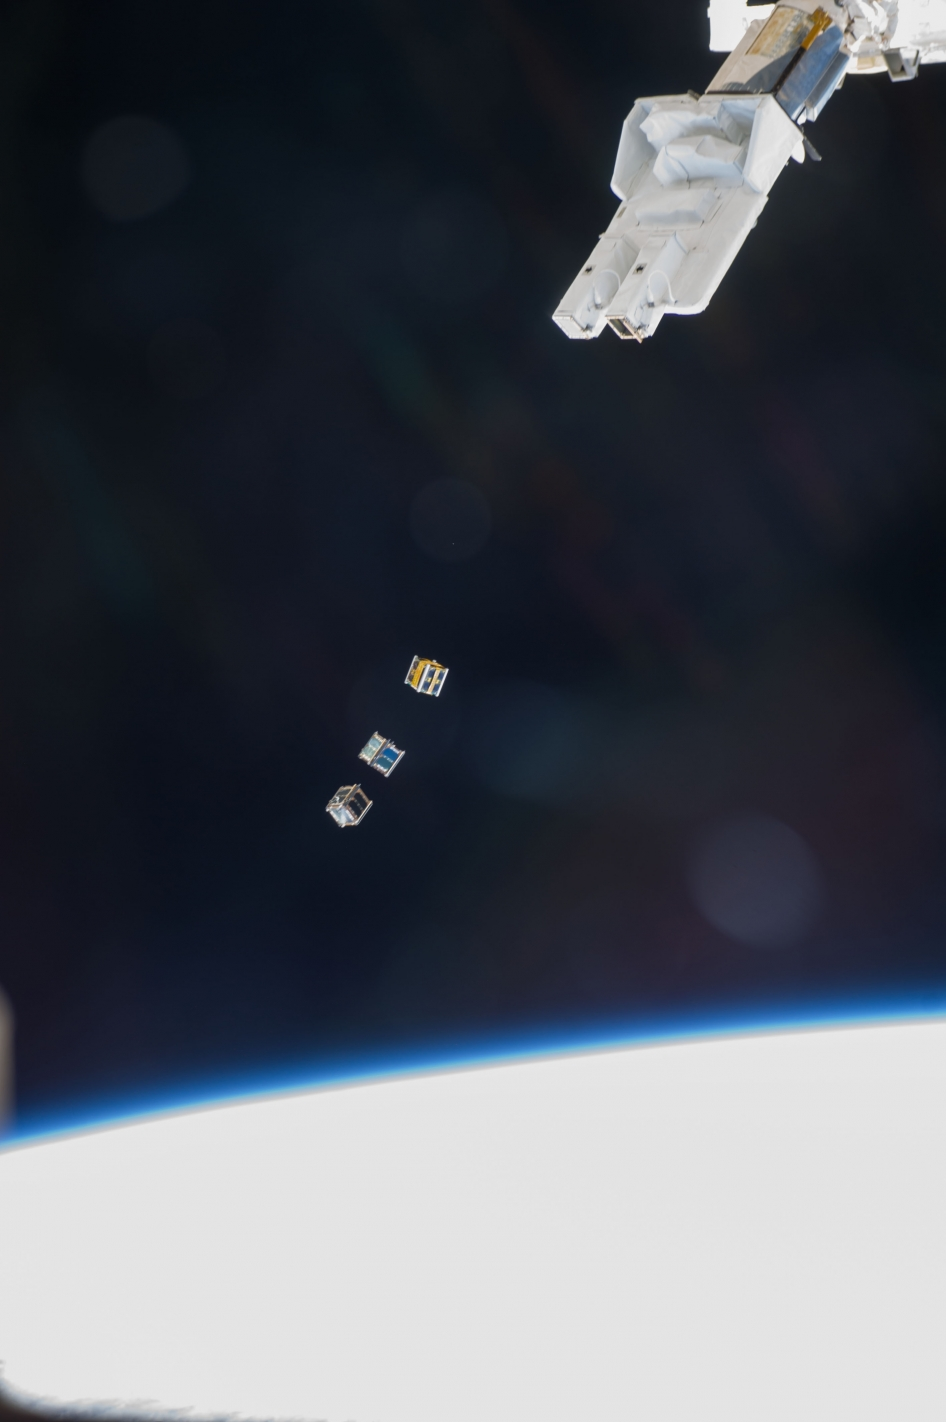 Three nanosatellites, known as Cubesats, are deployed from a Small Satellite Orbital Deployer (SSOD) attached to the Kibo laboratory's robotic arm at 7:10 a.m. (EST) on Nov. 19, 2013.